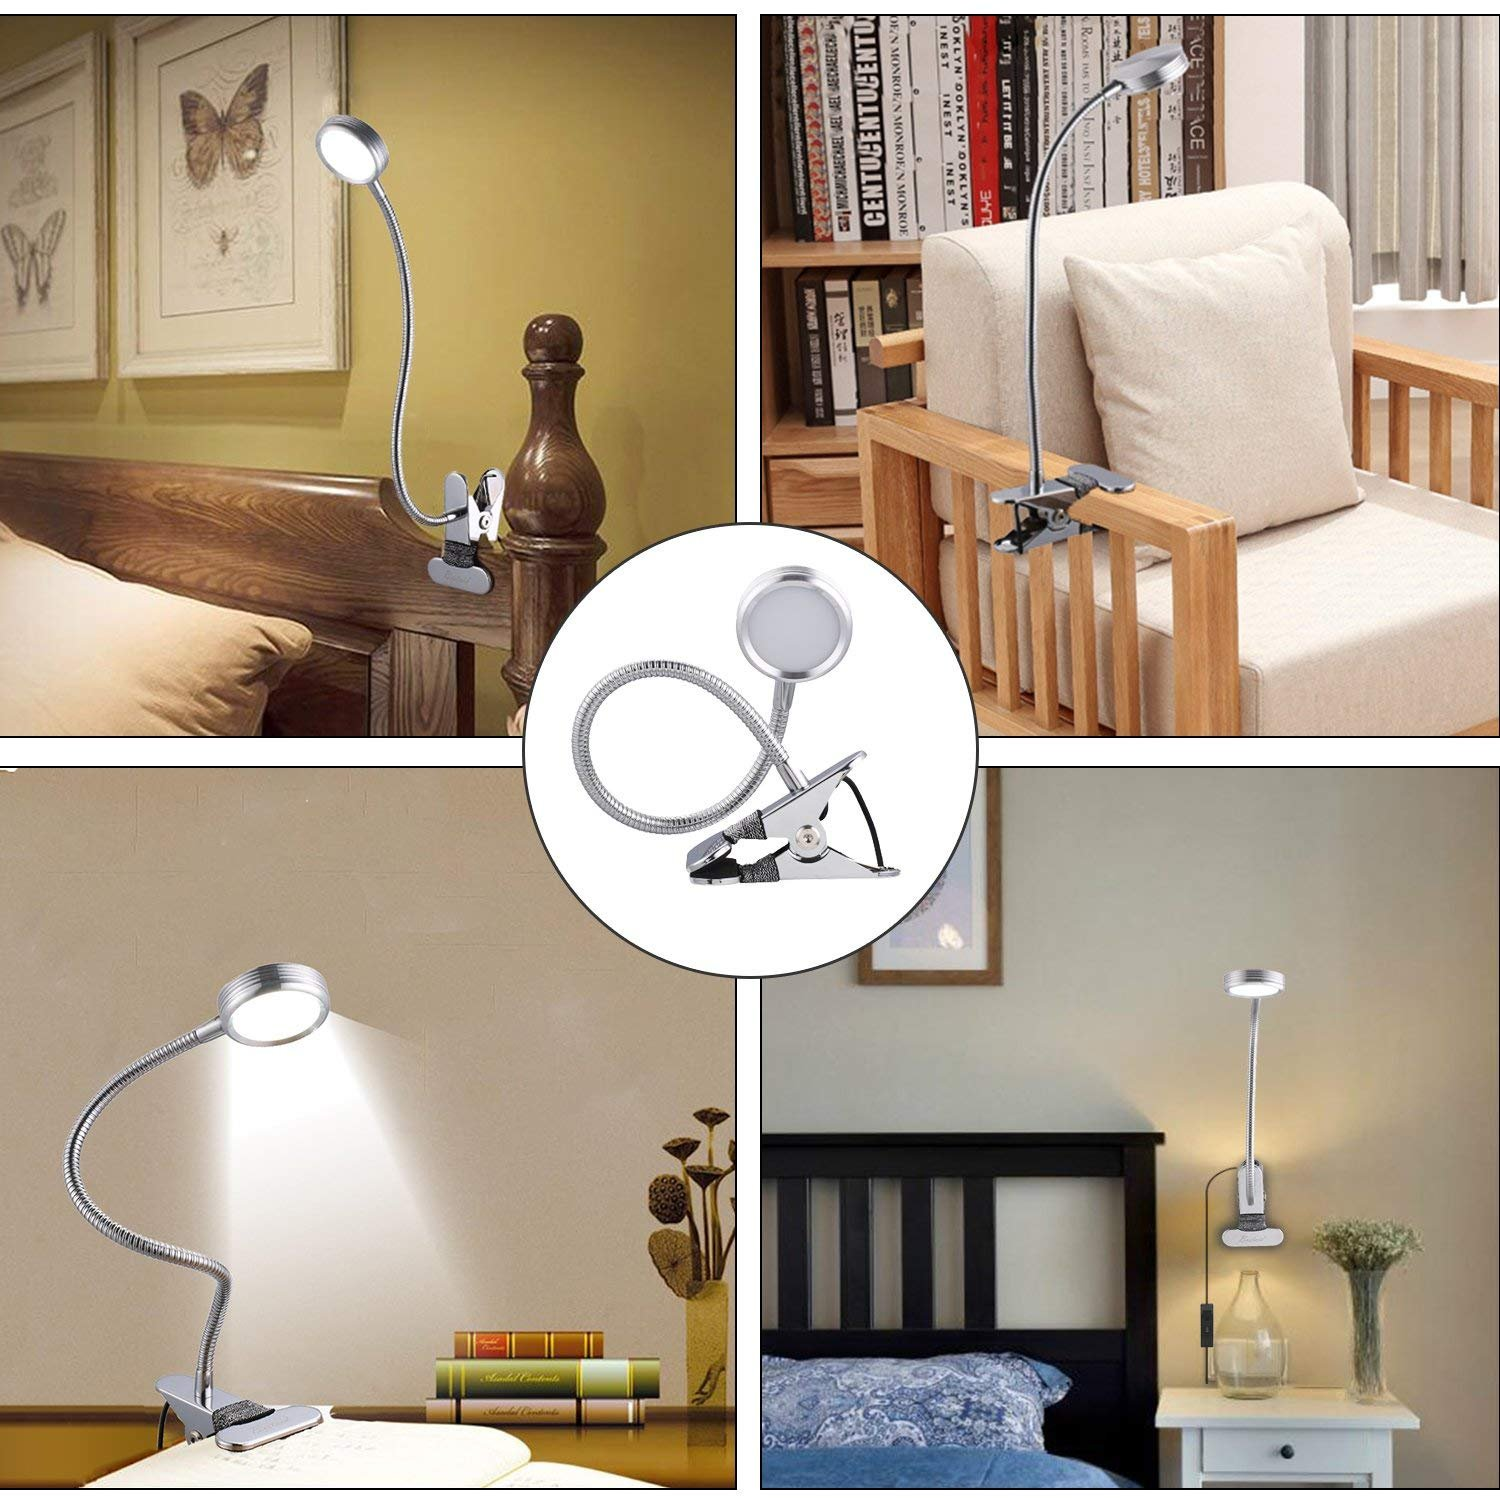 123 11.1 Gesenie LED Clip Reading Light Bed Headboard,Study Book Lamp Desk,11 Levels Brightness,3 Color Temperature,360°Adjustable Eye-Care Gooseneck Bedside Clamp,Memory Function,Sleep Mode,5W USB Silver by 123 (Image #5)